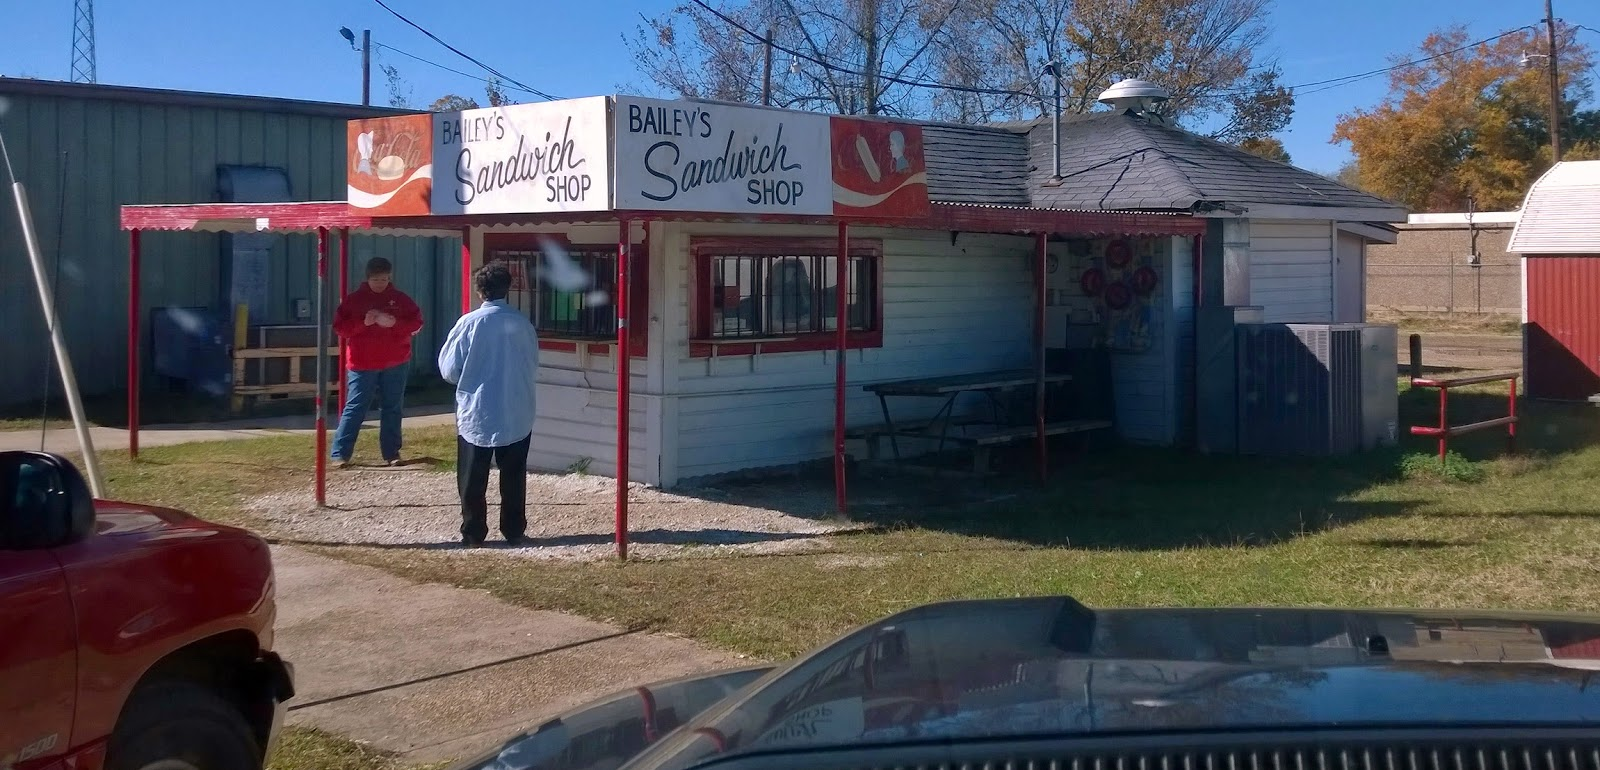 coushatta guys Find 3 listings related to 5 guys burgers and fries in coushatta on ypcom see reviews, photos, directions, phone numbers and more for 5 guys burgers and fries locations in coushatta, la.